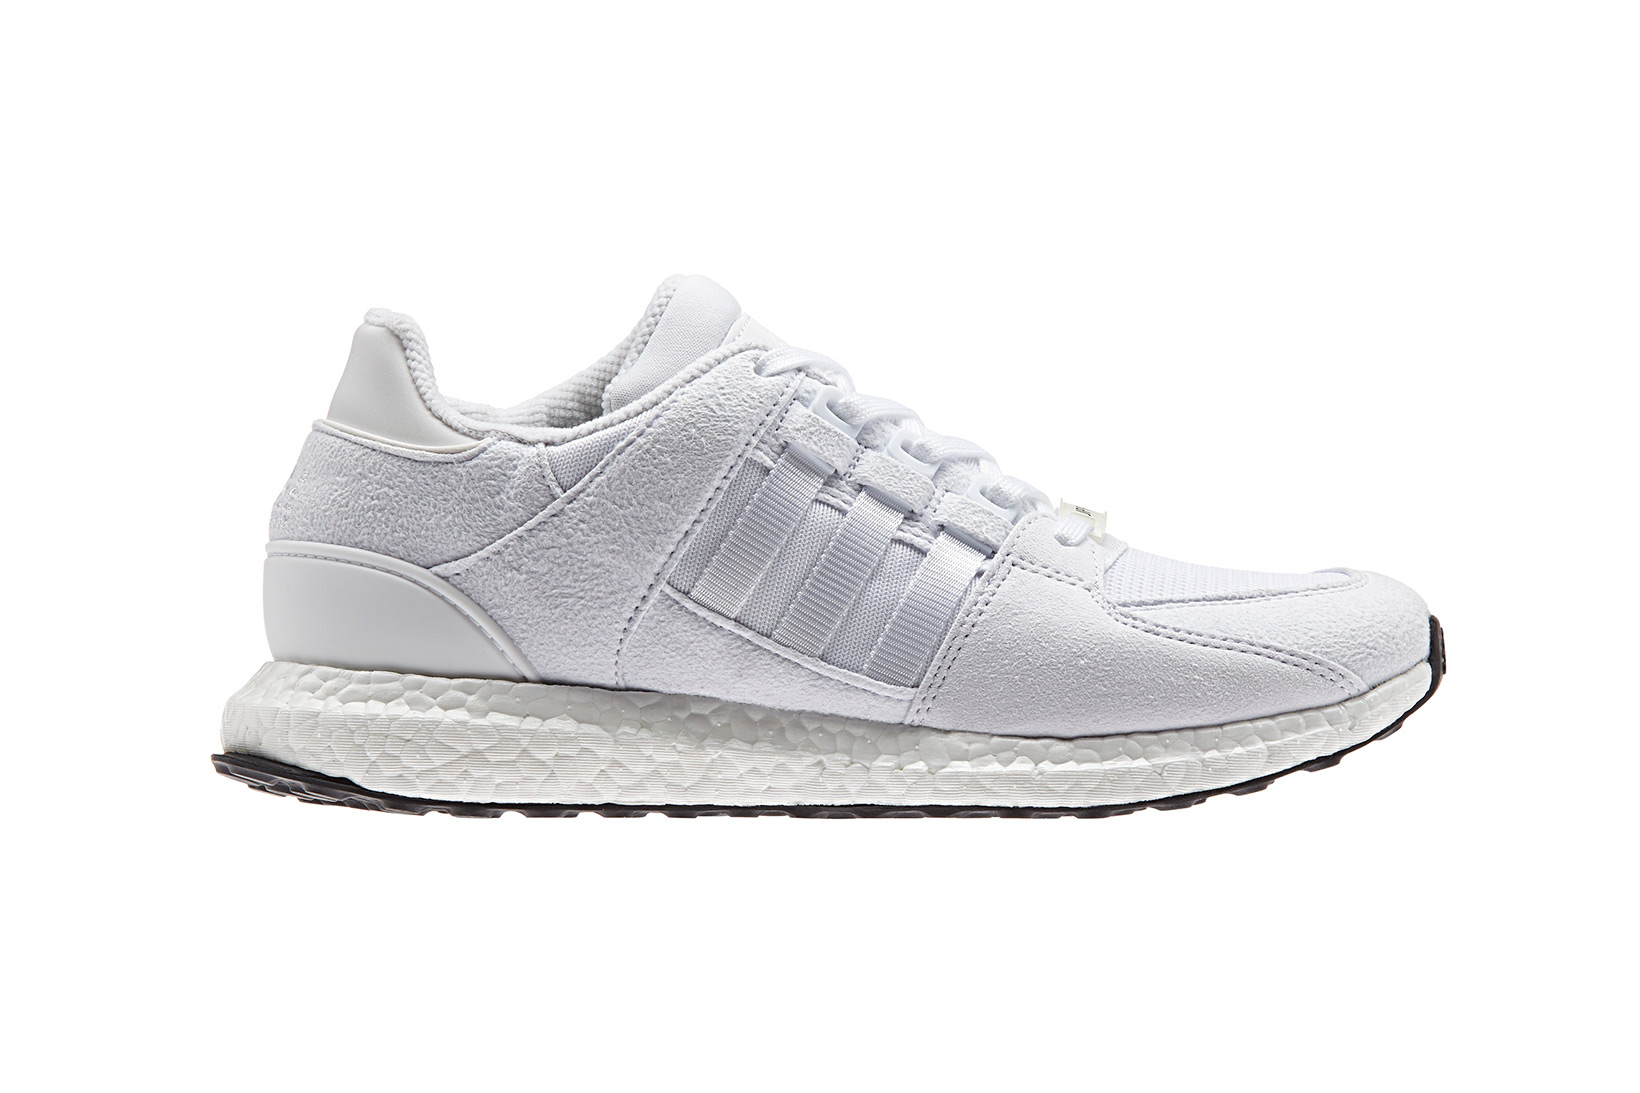 adidas EQT Support Ultra CNY Shoes White adidas New Zealand